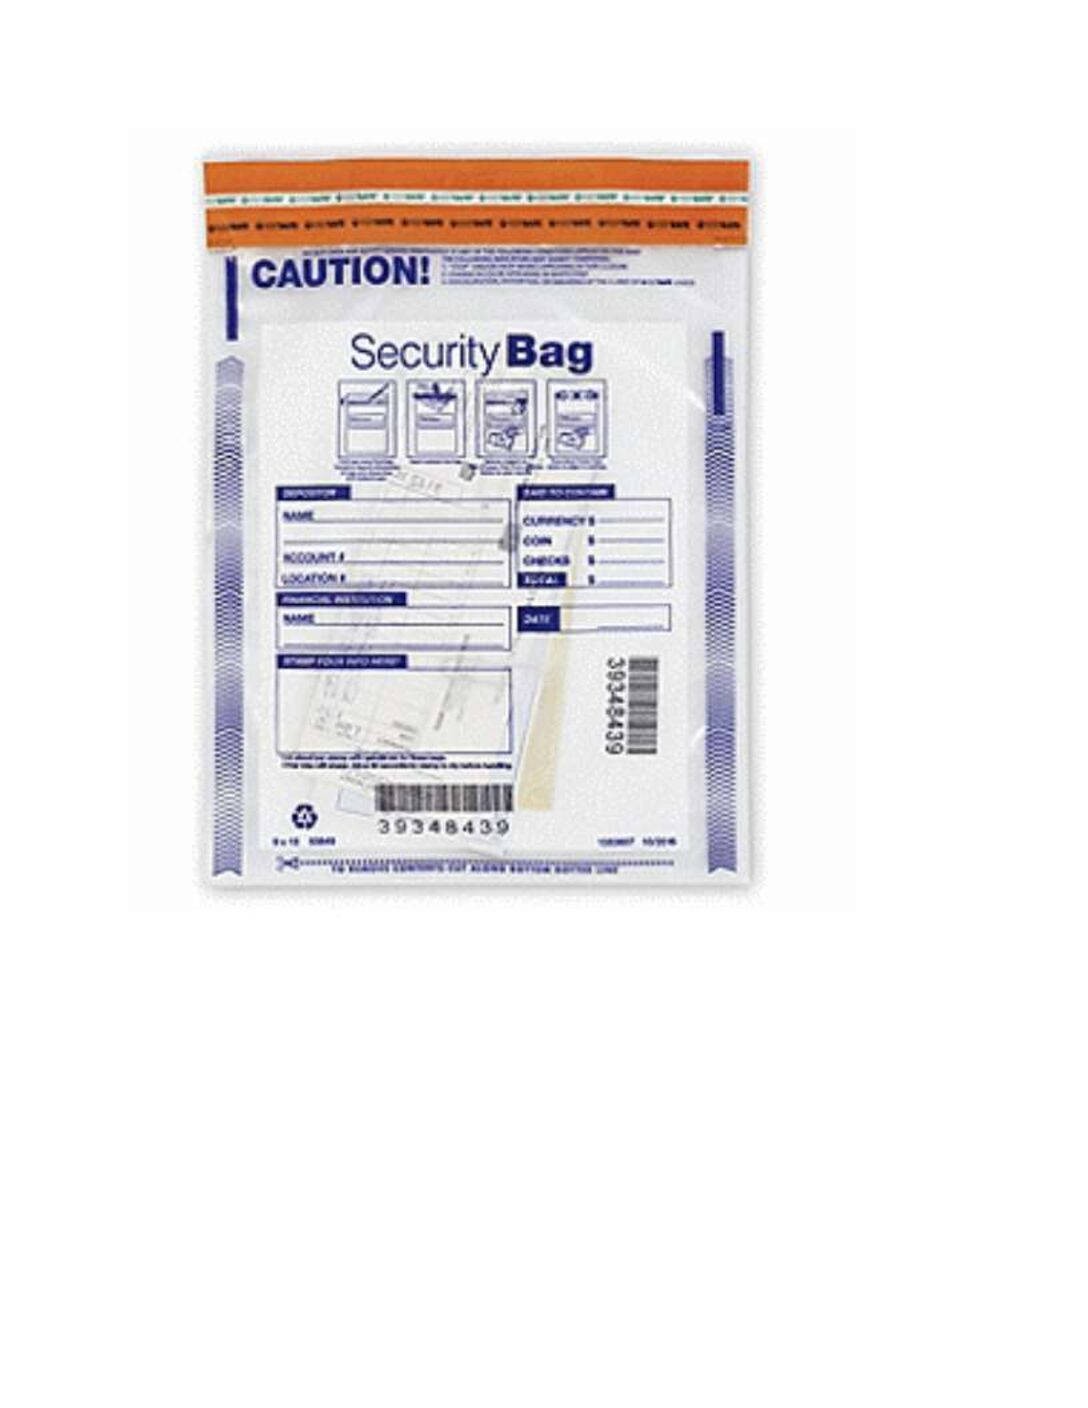 Tamper Resistant Envelopes and Bags